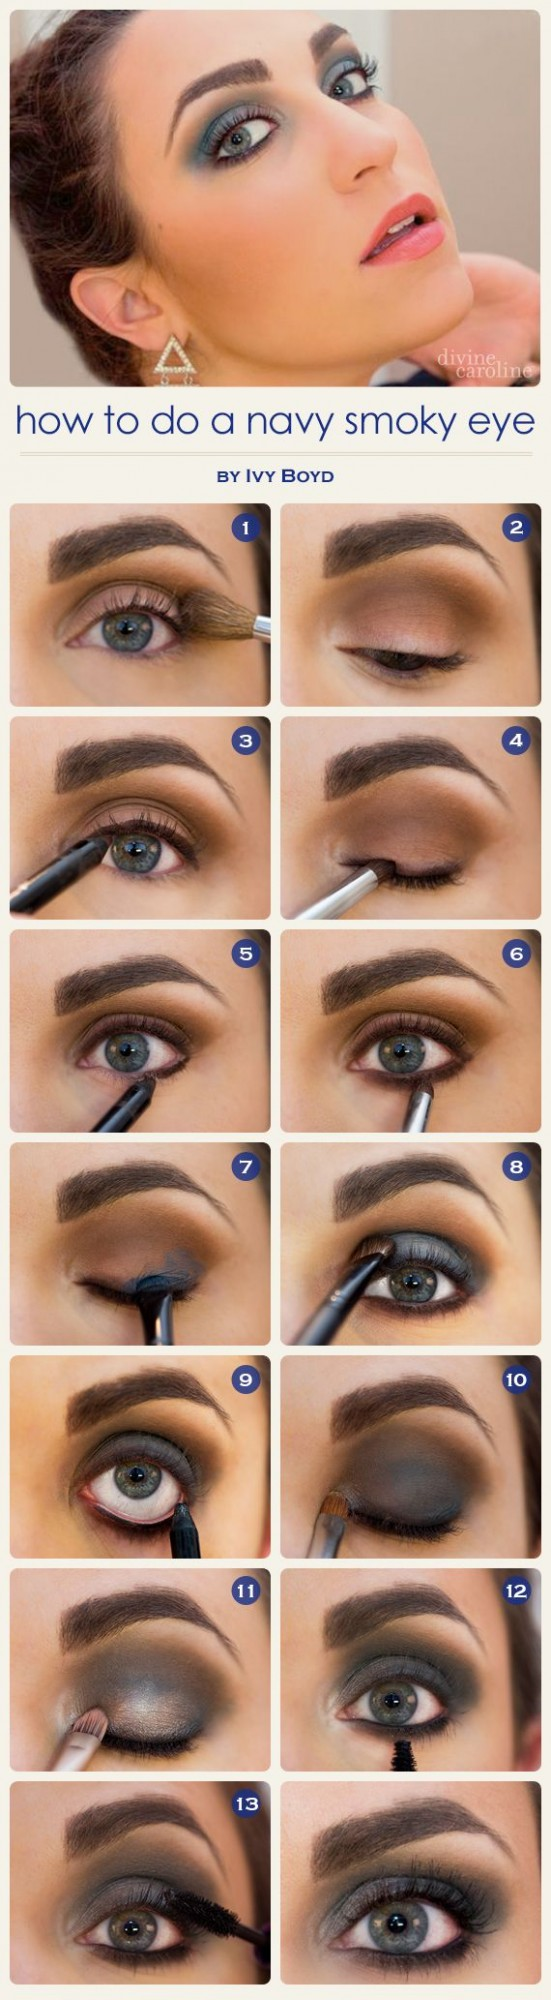 30 Photos of The Best Fall Makeup Trends, Ideas and Tutorials (7)